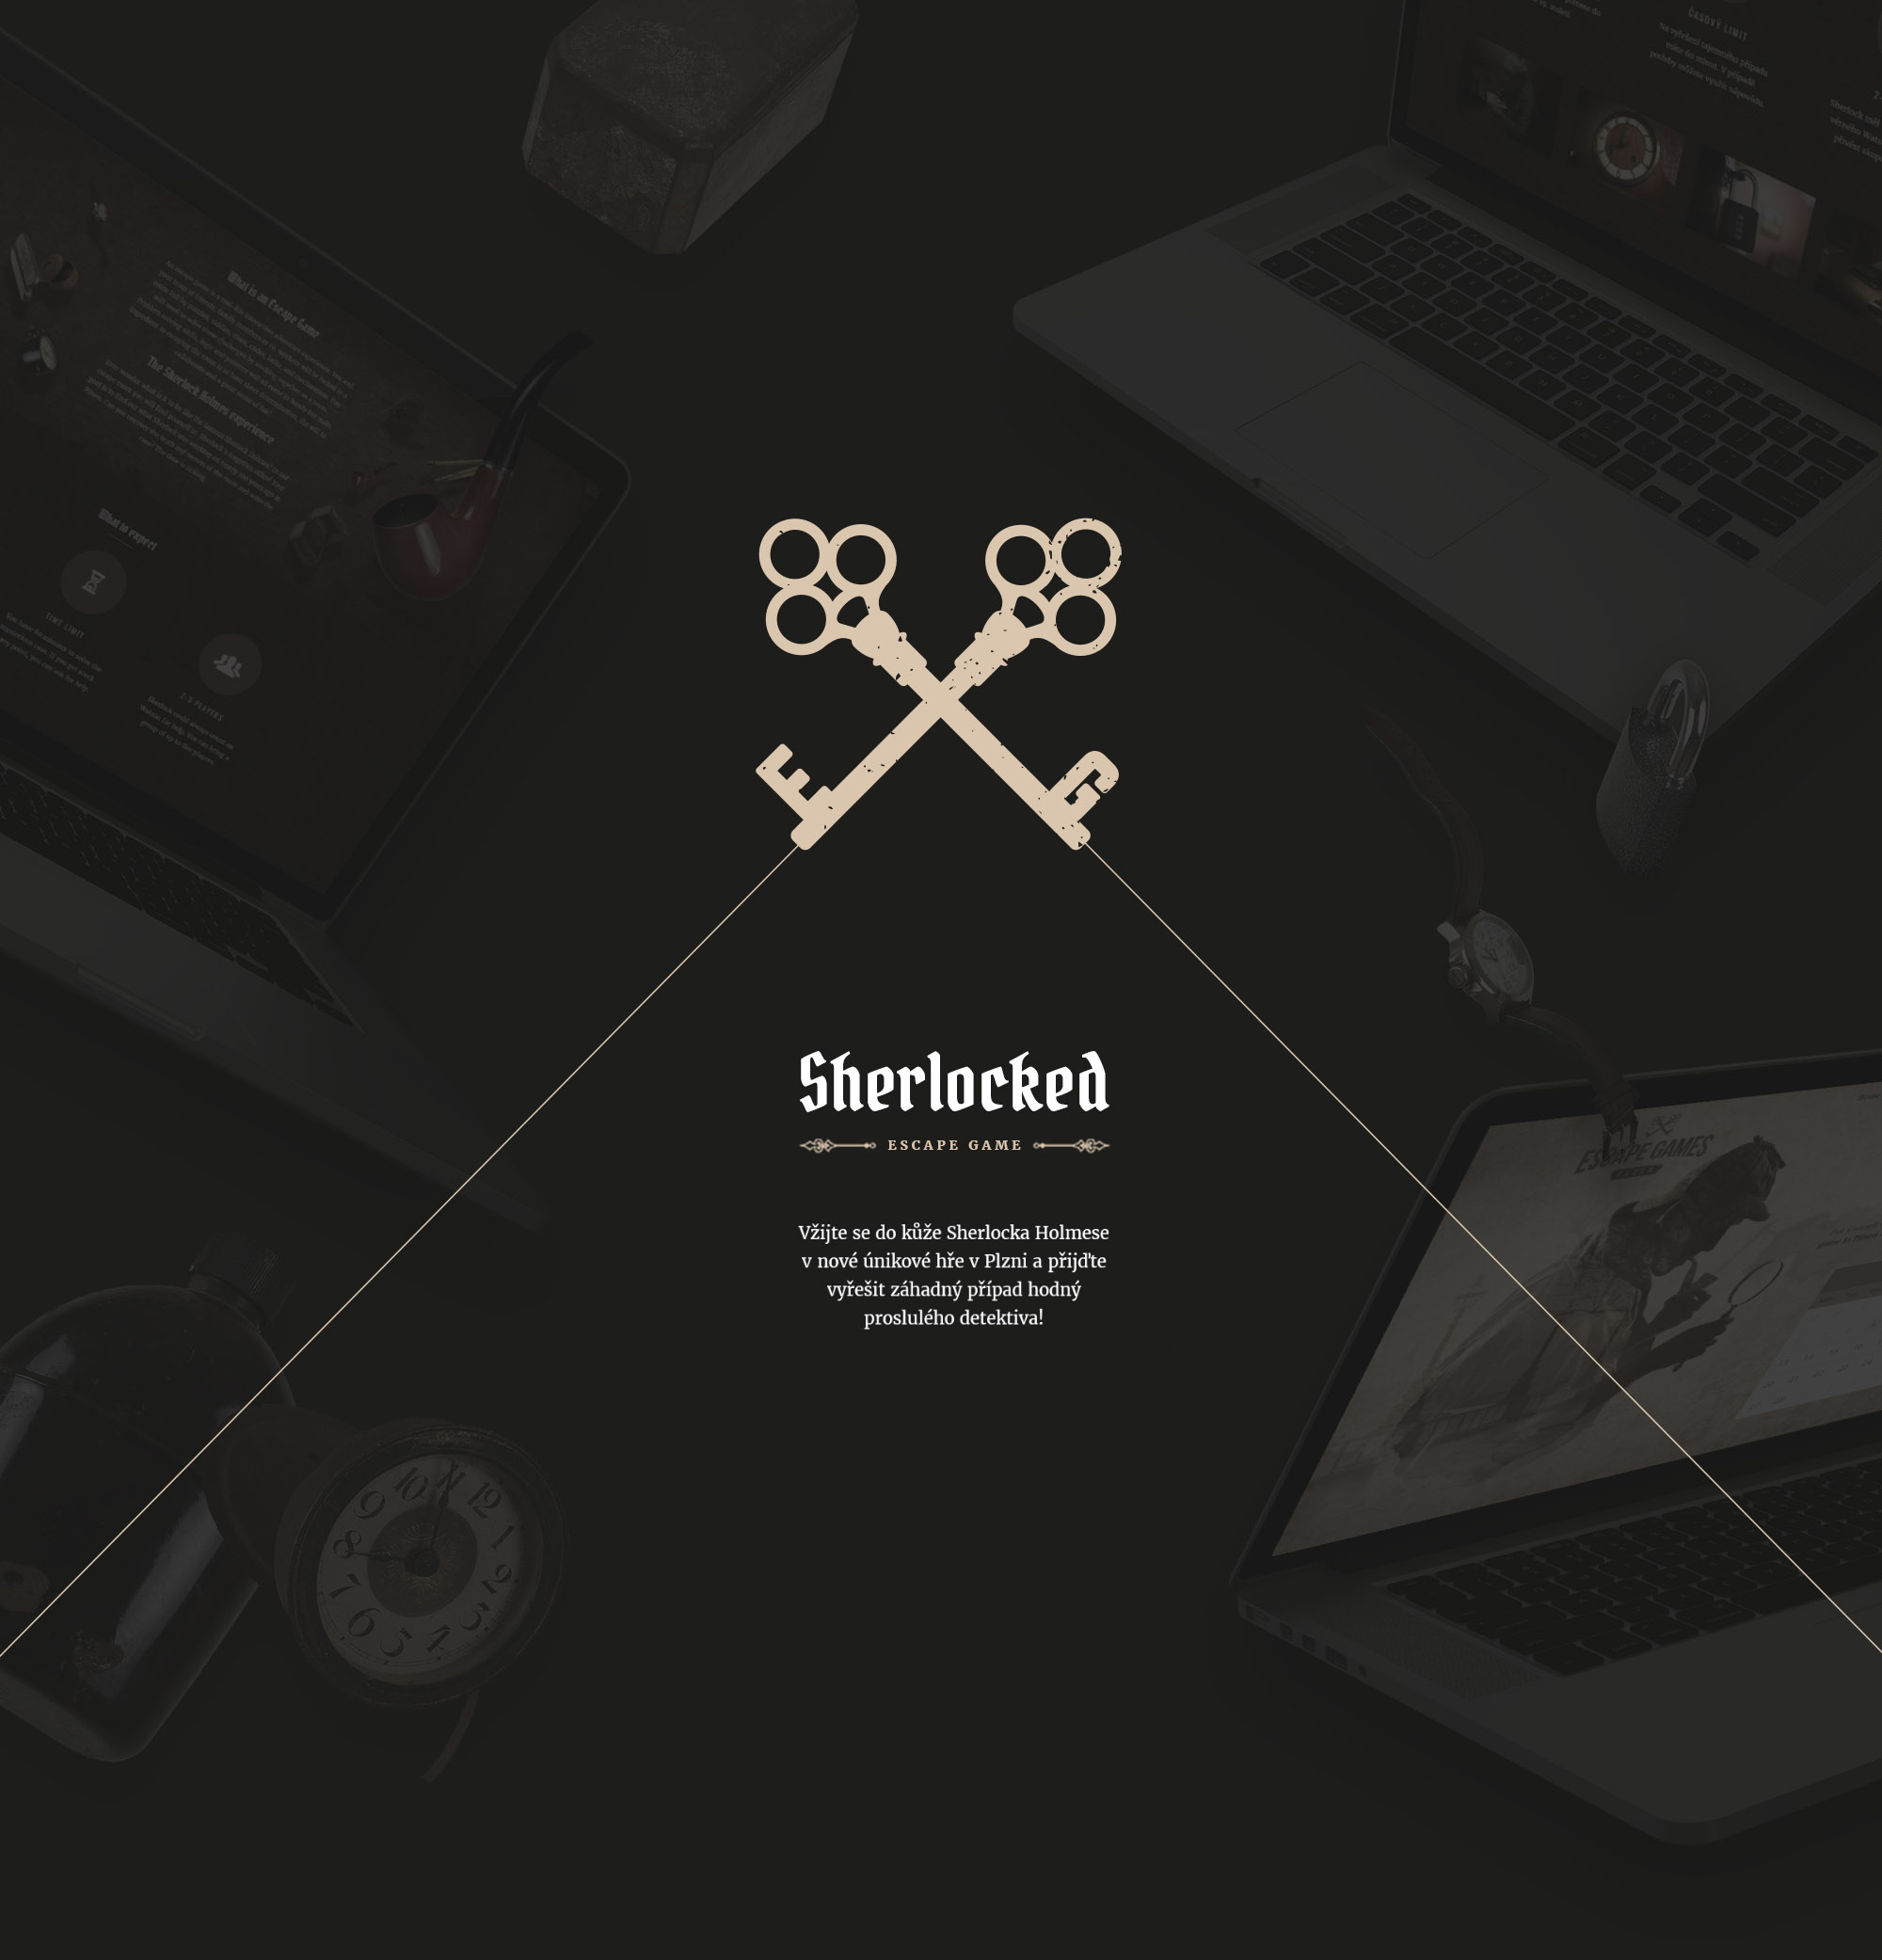 sherlocked_portfolio-behance01-CZ